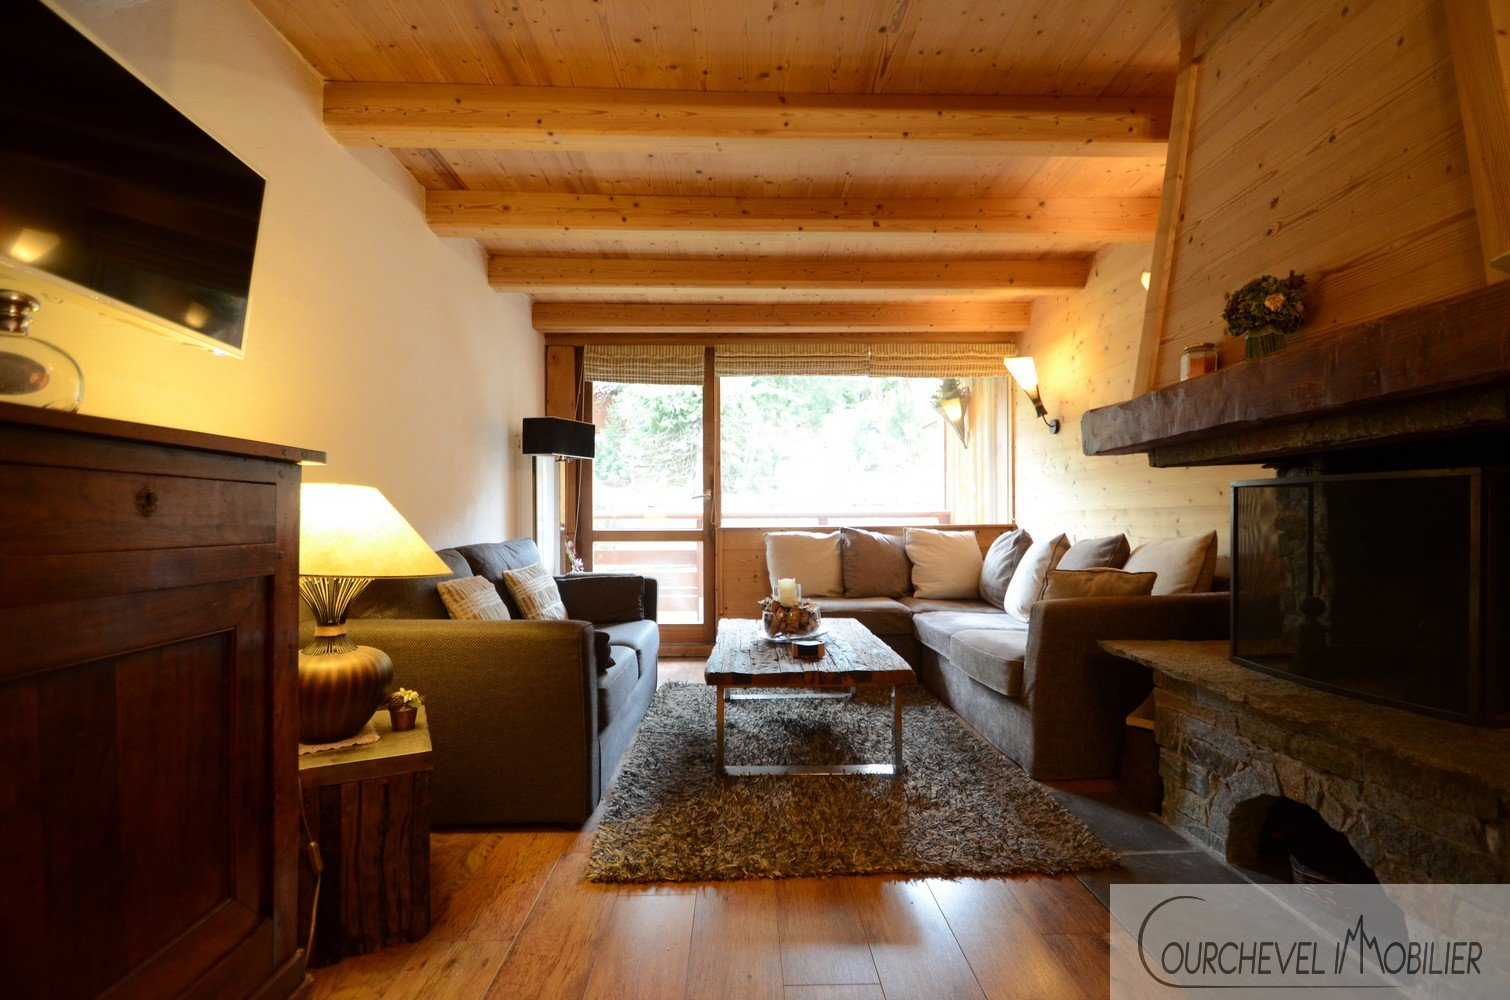 2 Bedrooms apartment - Courchevel Village